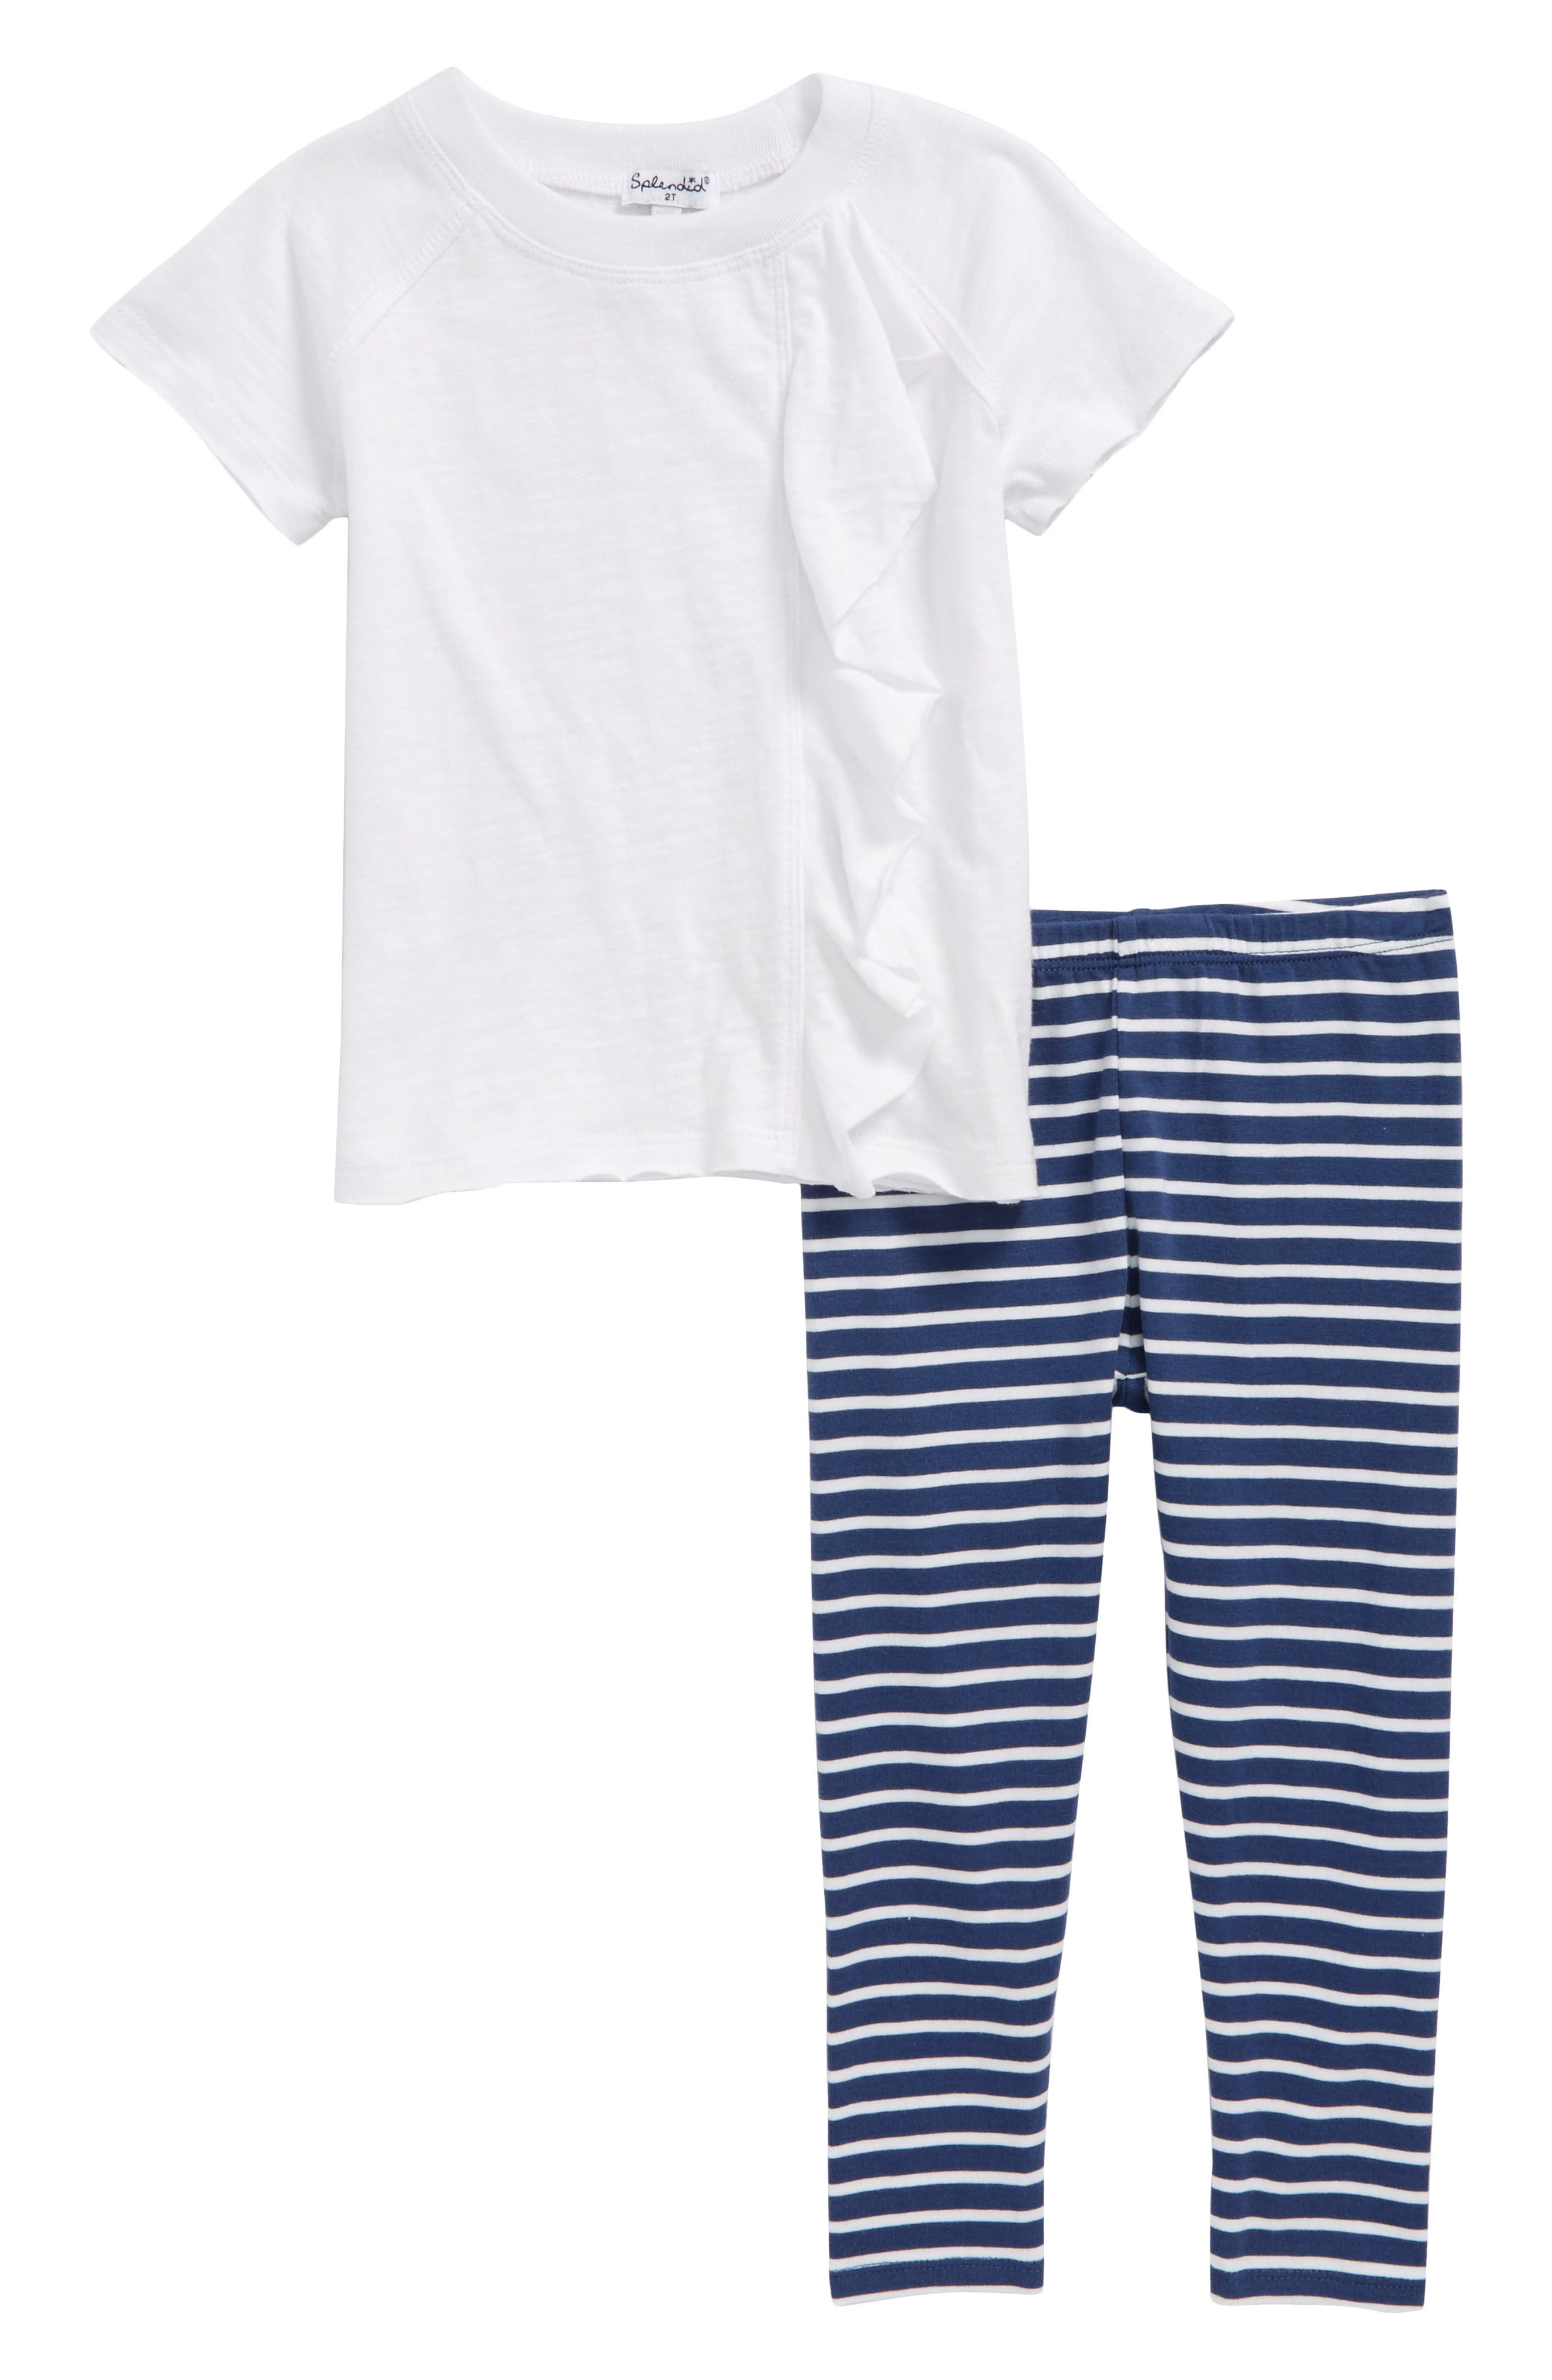 Ruffle Top & Stripe Leggings Set,                             Main thumbnail 1, color,                             Optic White